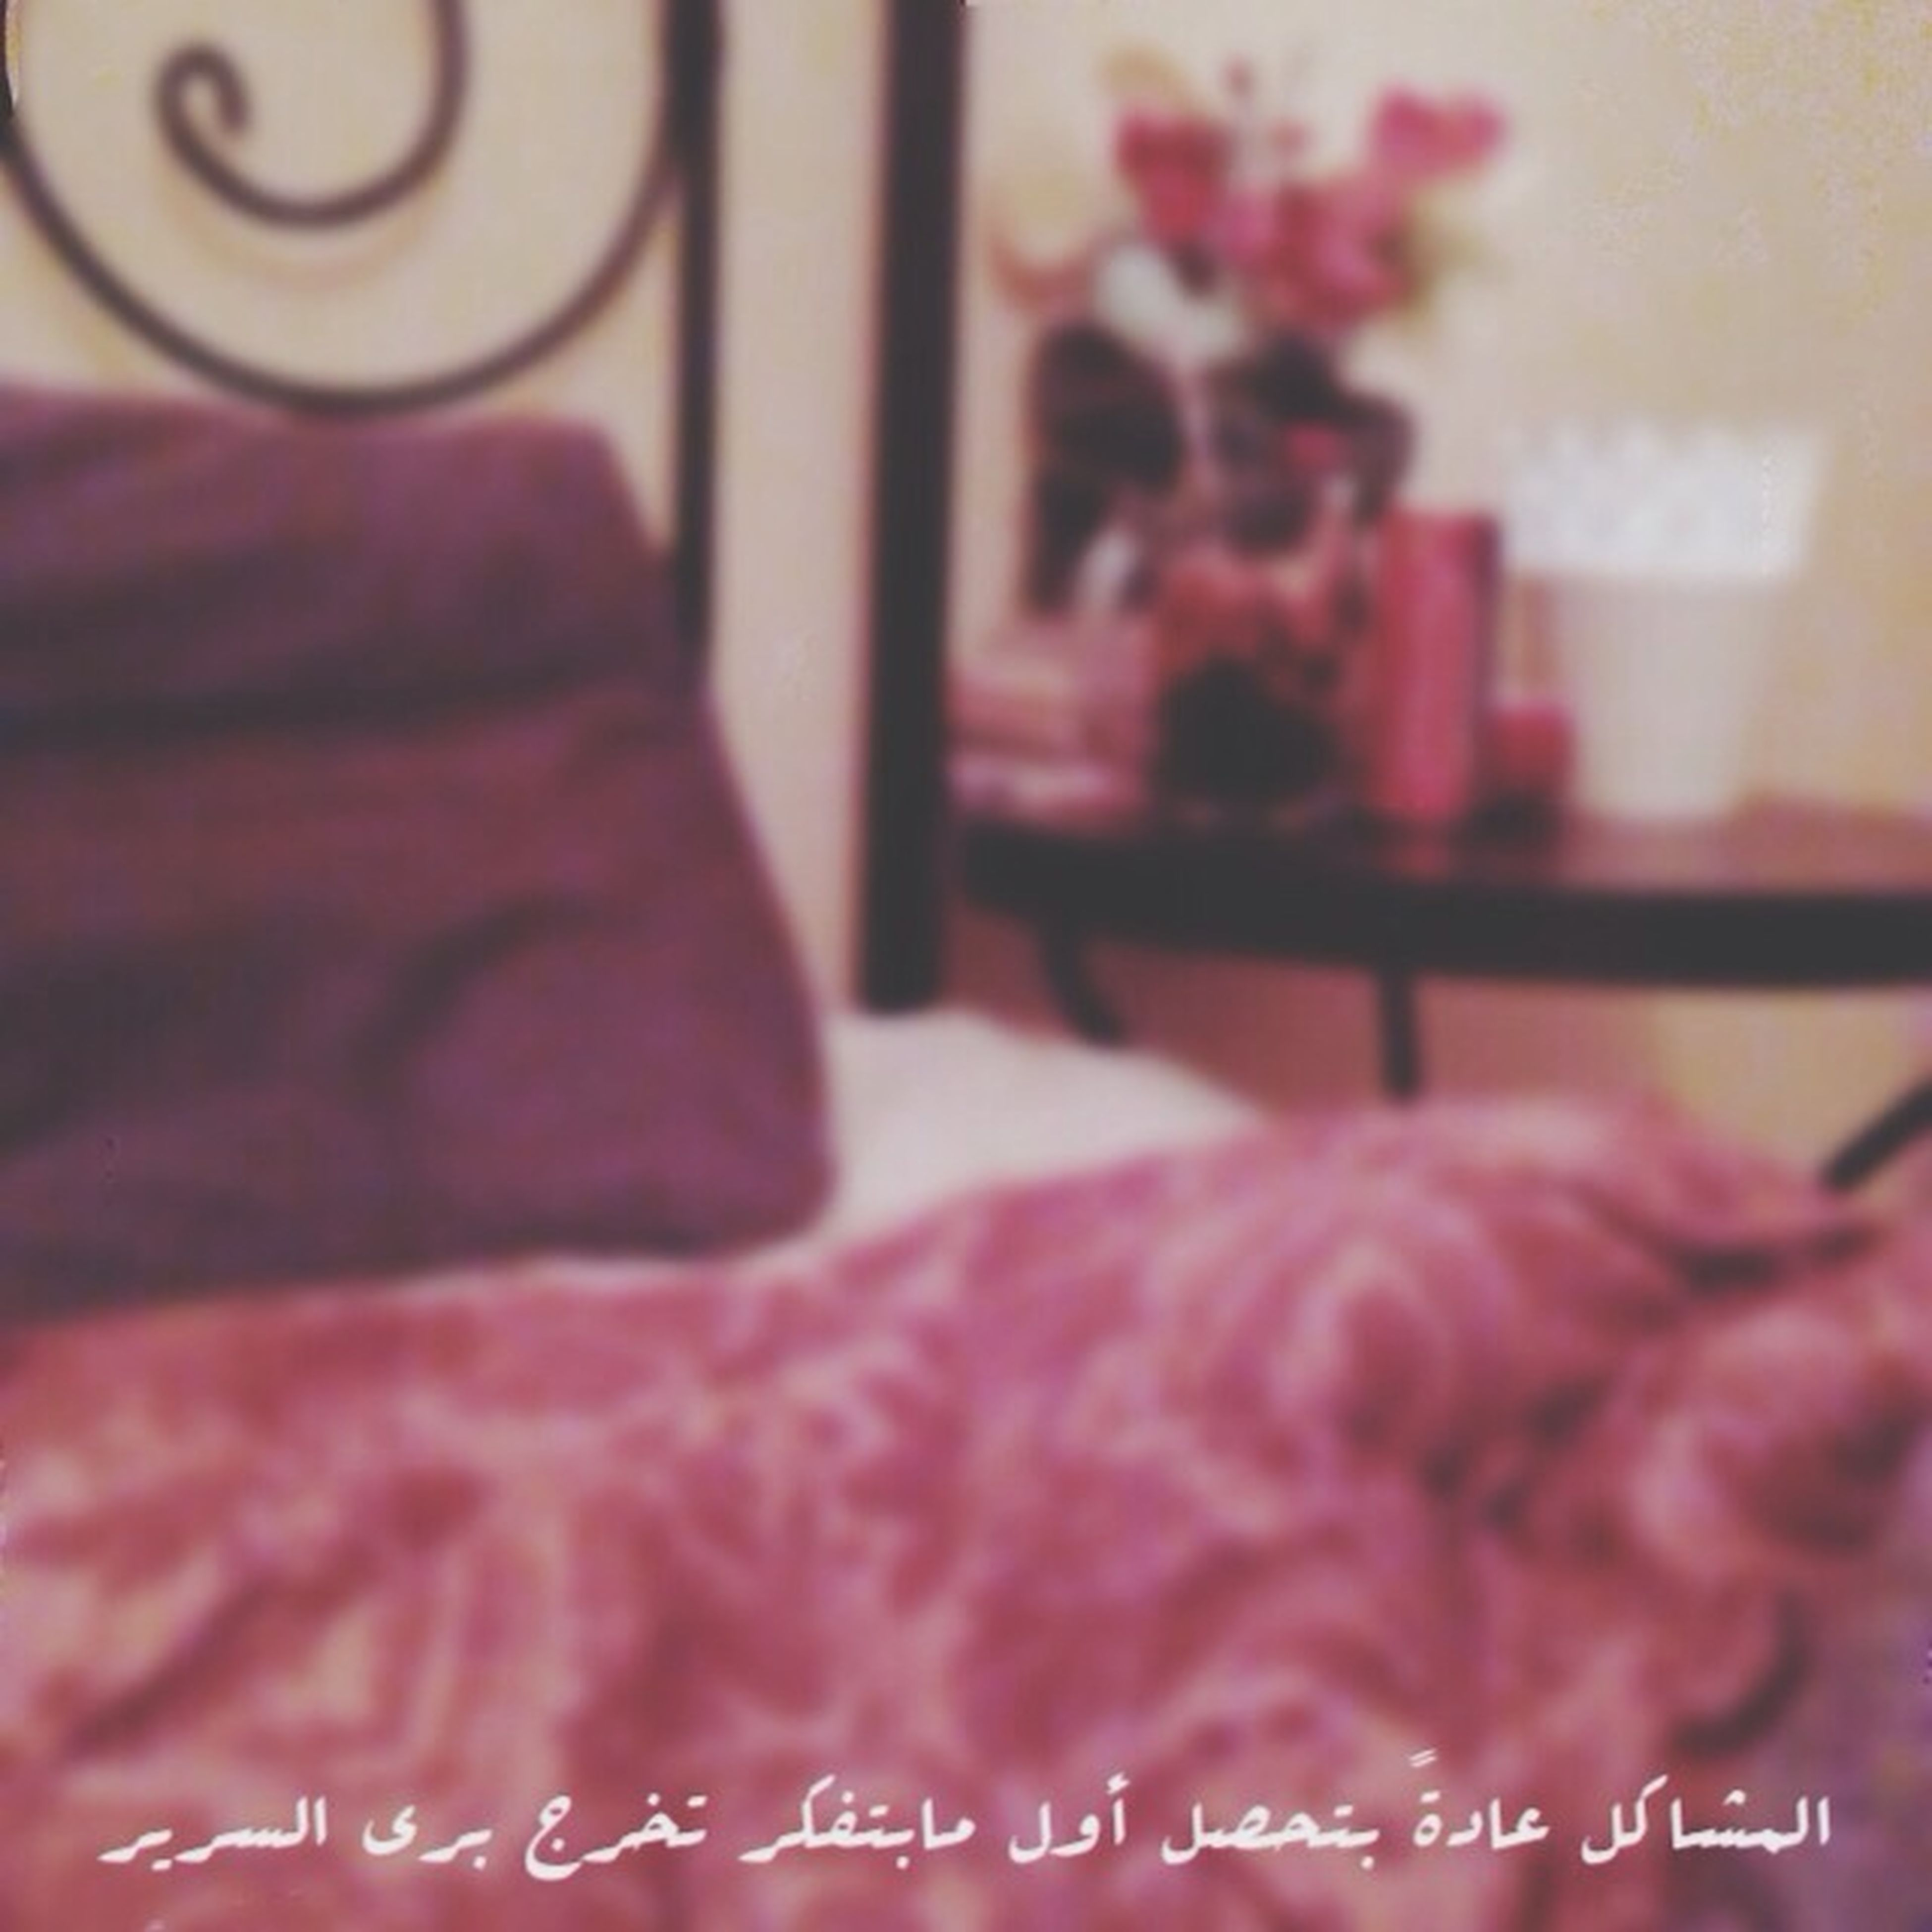 indoors, red, close-up, pink color, text, focus on foreground, selective focus, western script, communication, no people, home interior, paper, still life, day, textile, book, fabric, auto post production filter, table, bed